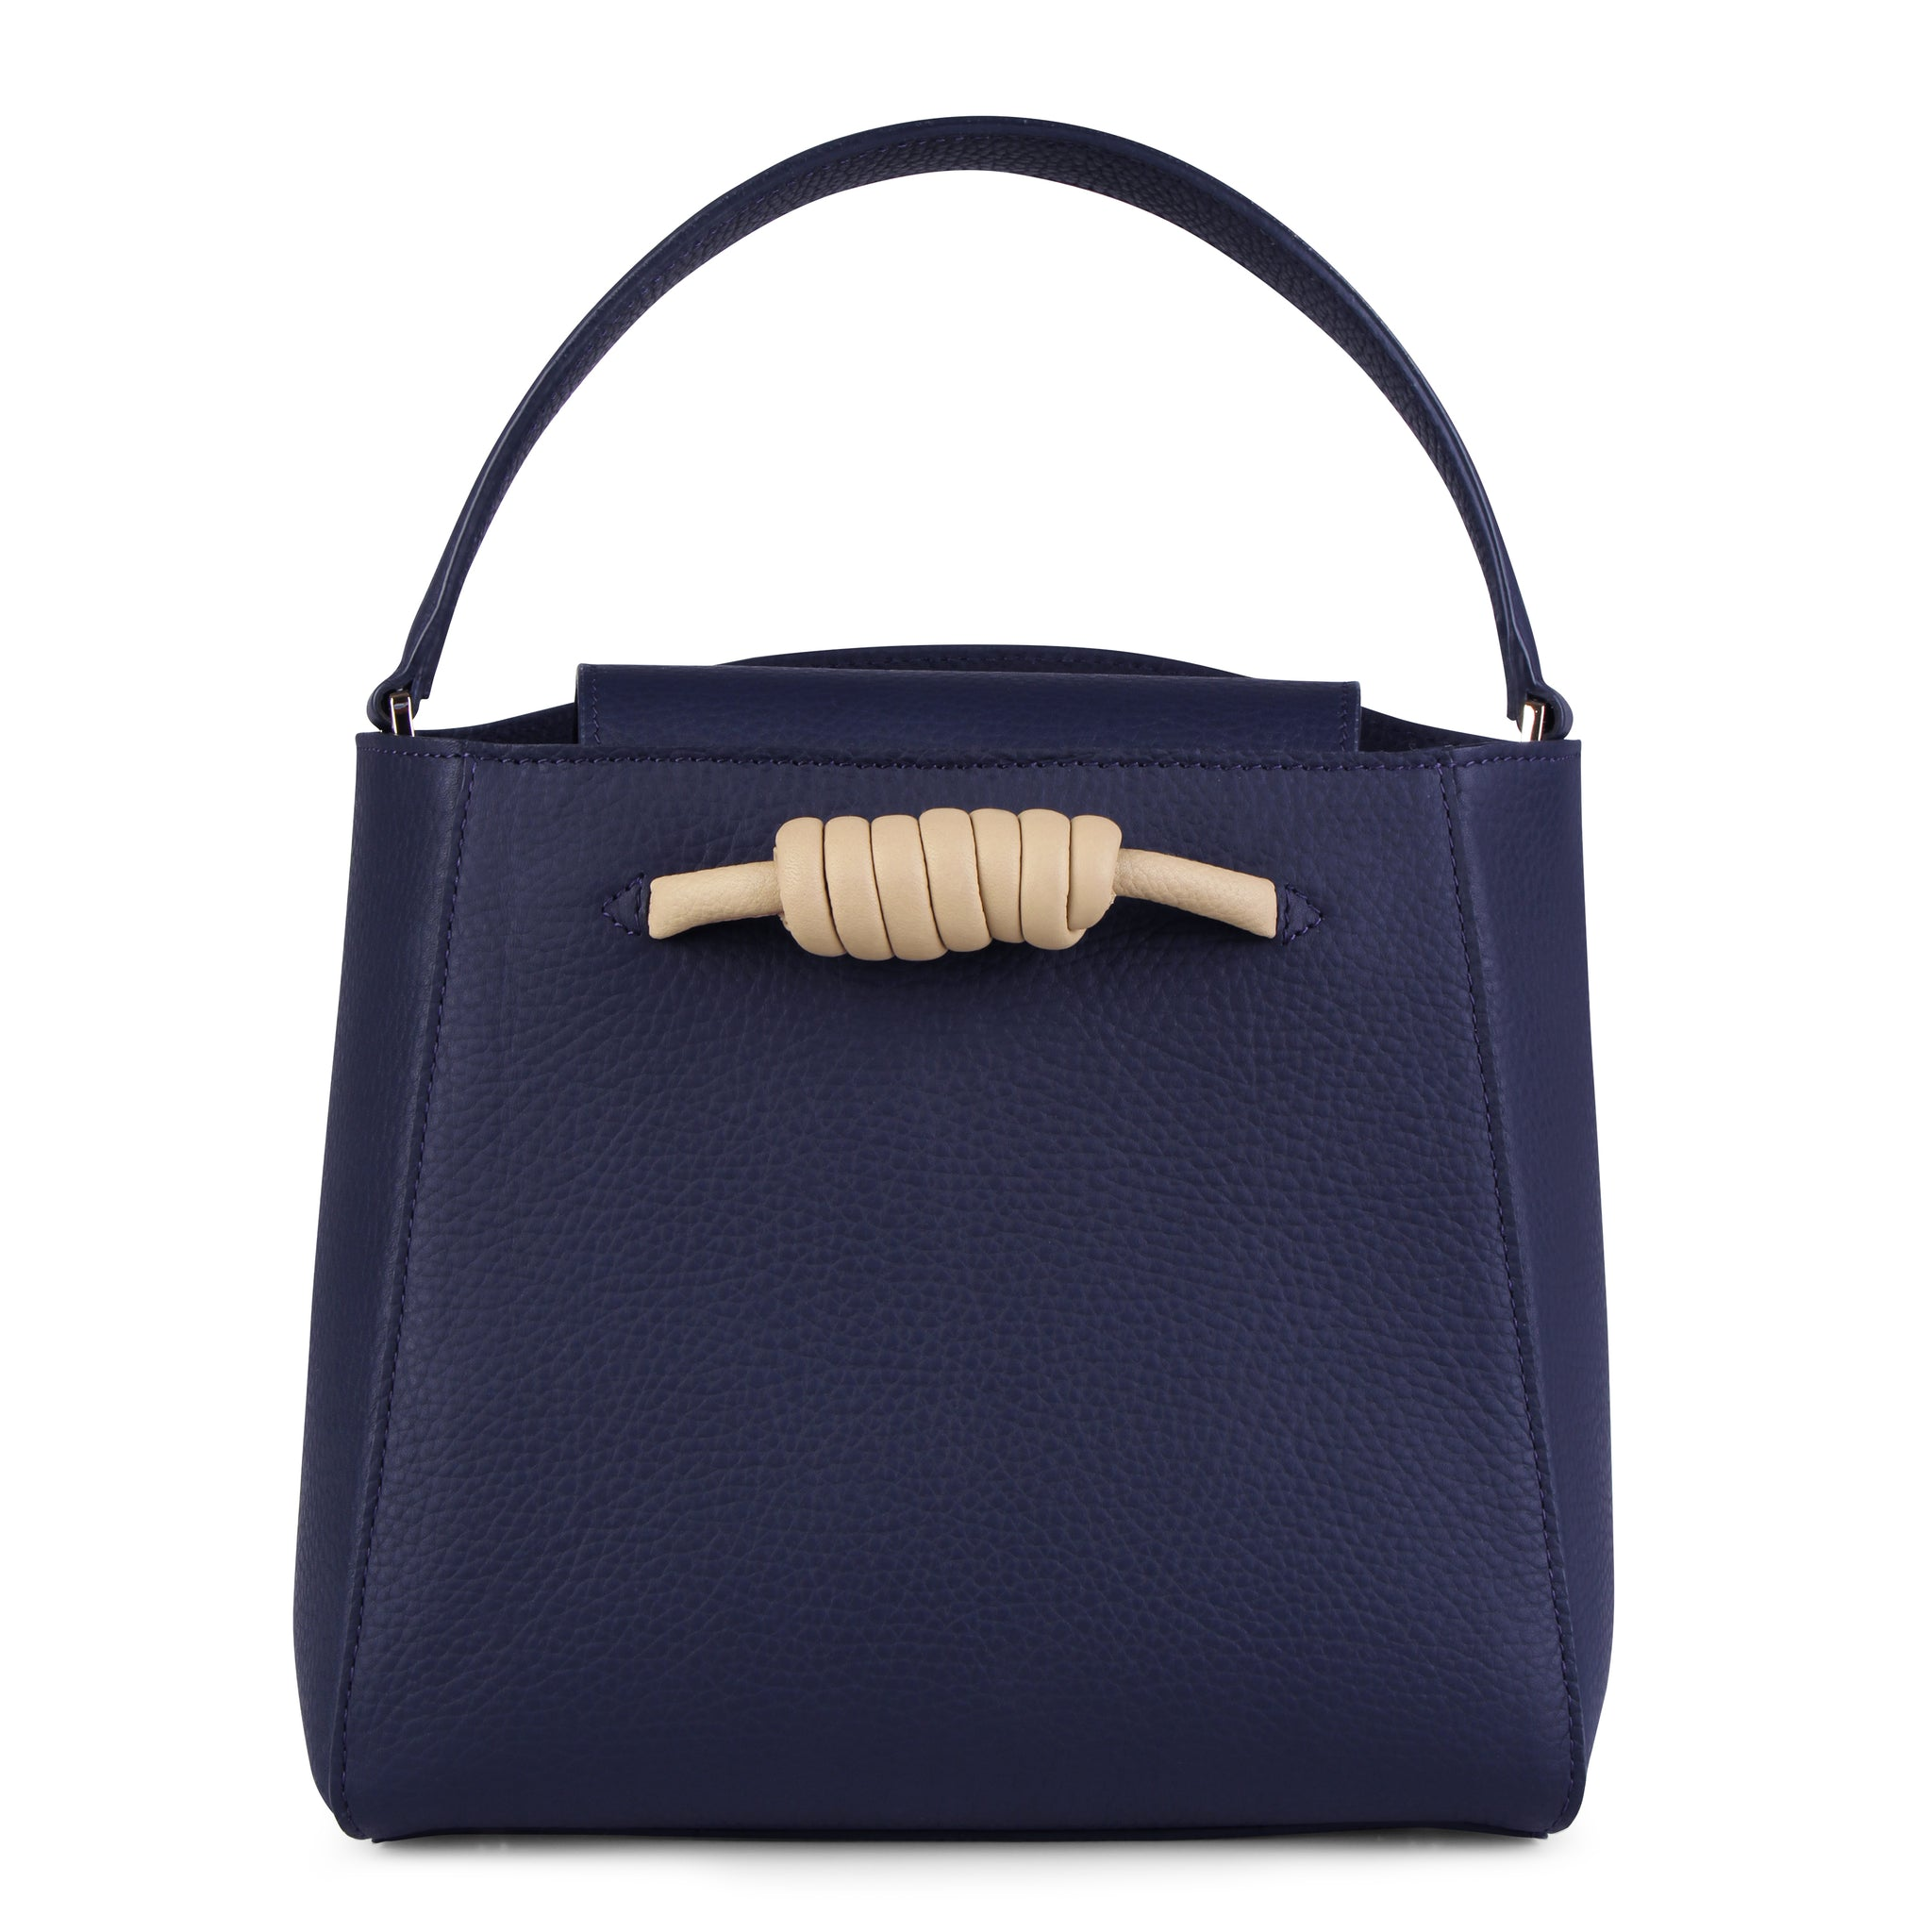 A medium size navy convertible leather top handle tote bag with a knot detail in front that could be used as a handheld mini tote bag, front image.